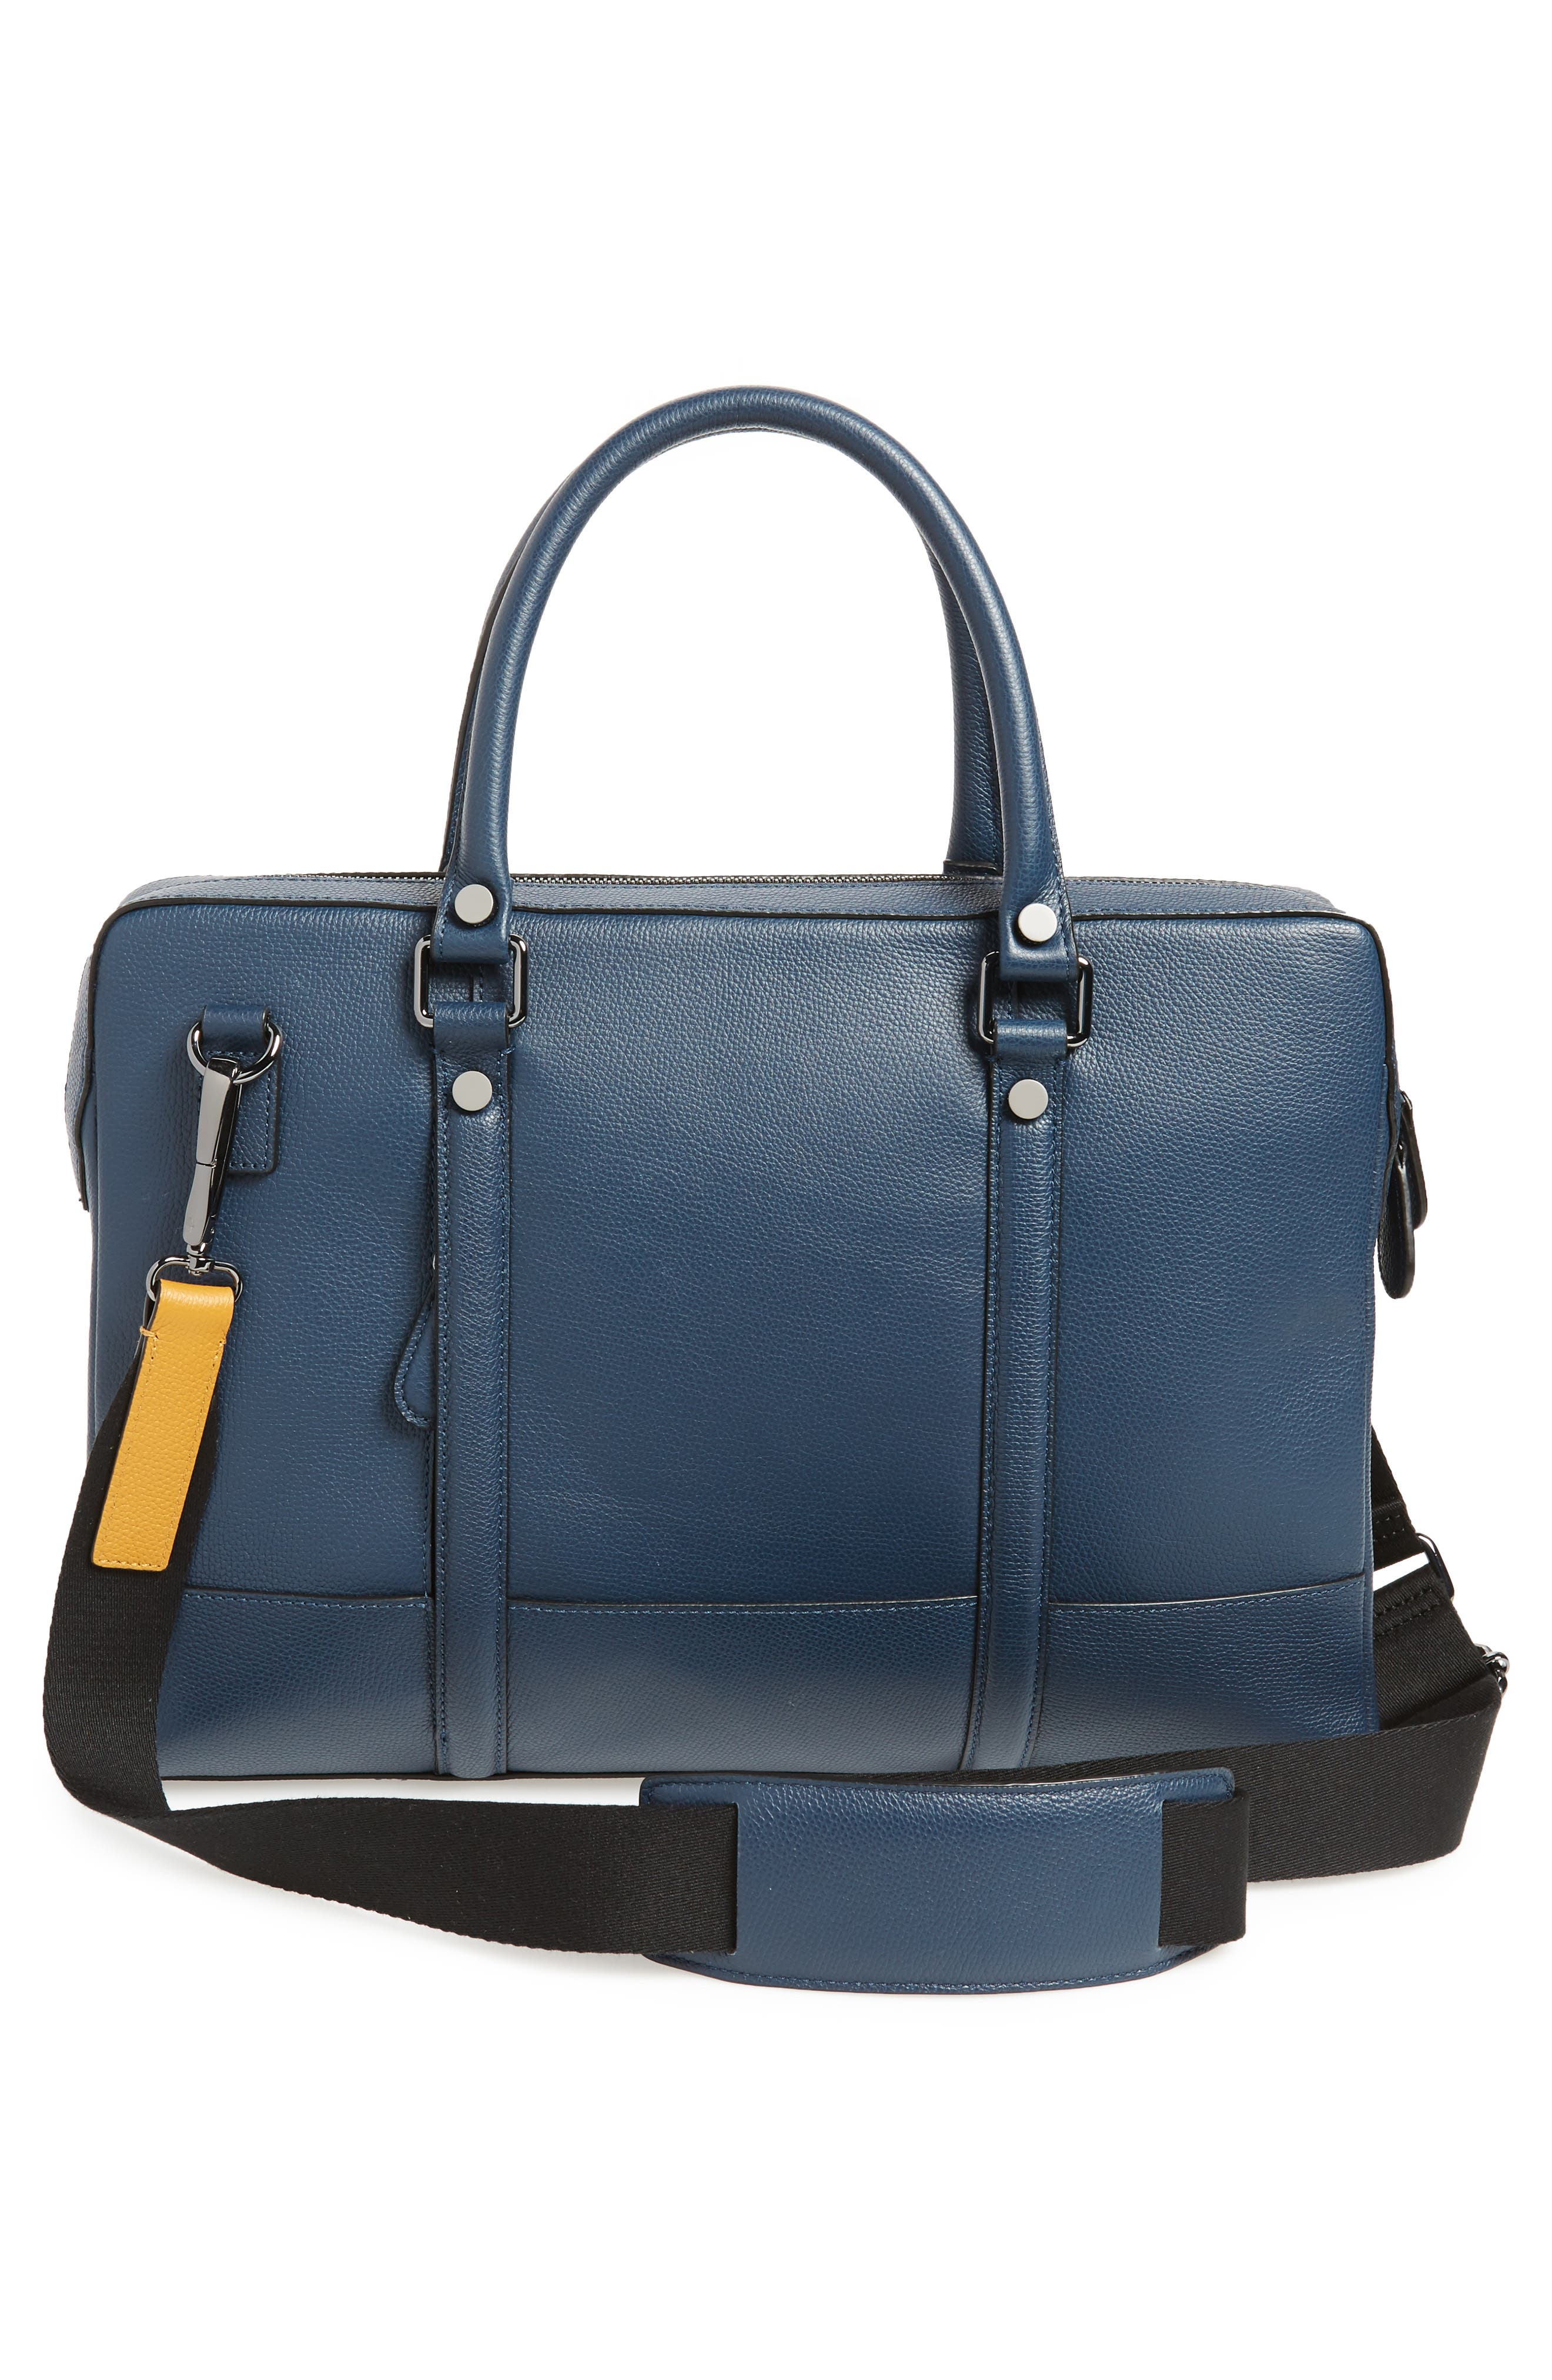 AWOL Leather Document Bag,                             Alternate thumbnail 3, color,                             NAVY